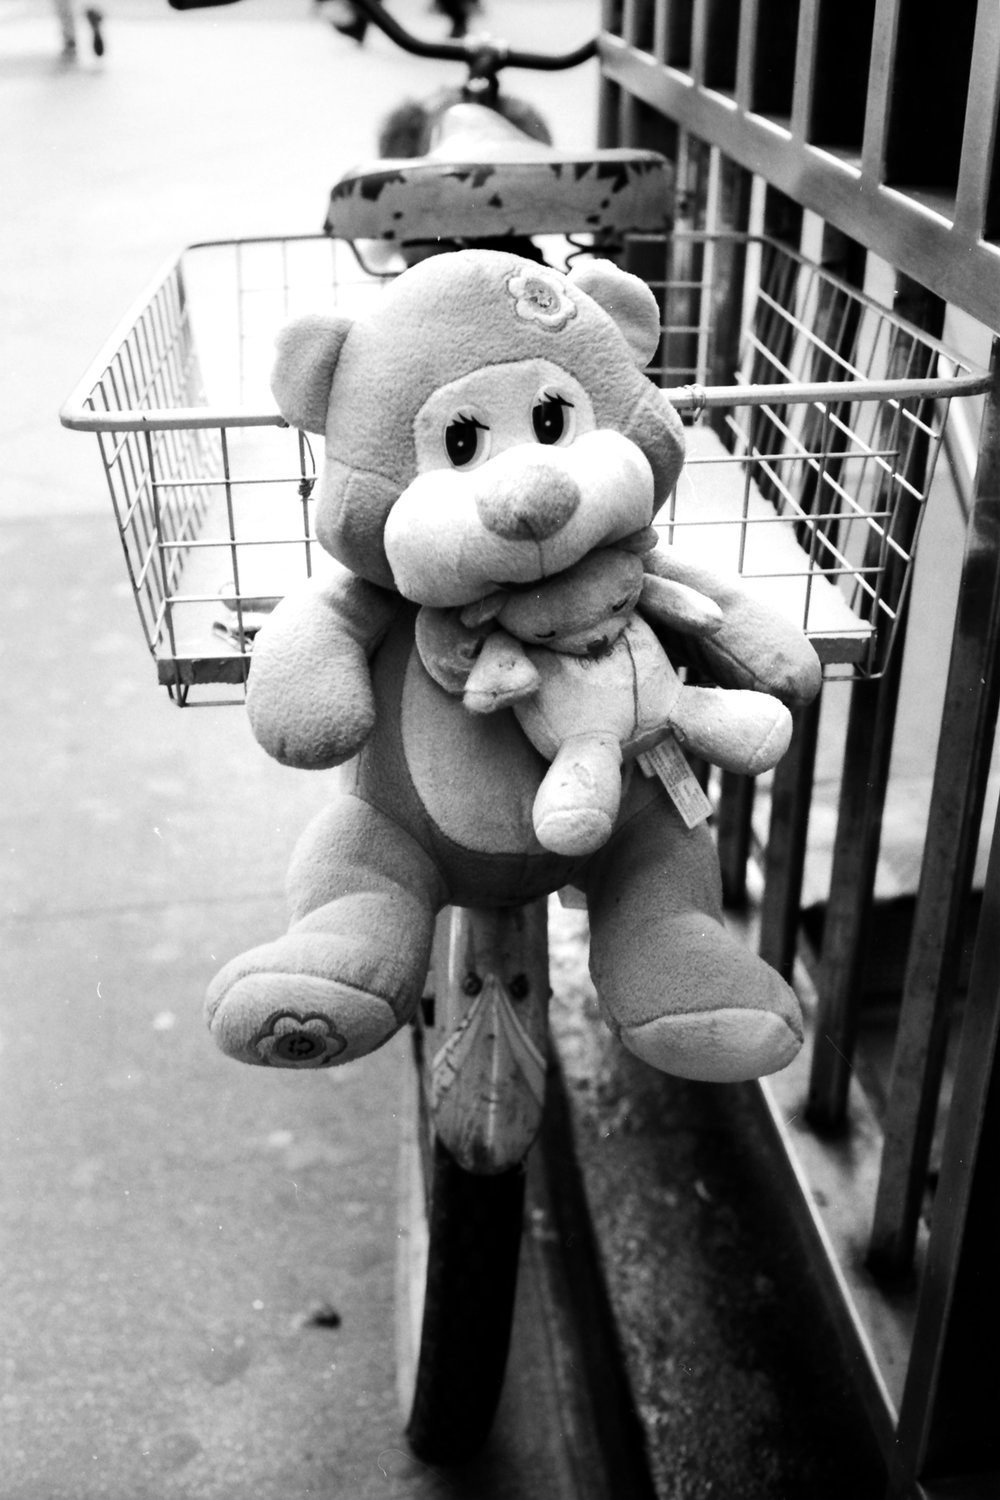 bicycle-midtown-stuffed-animal.jpg